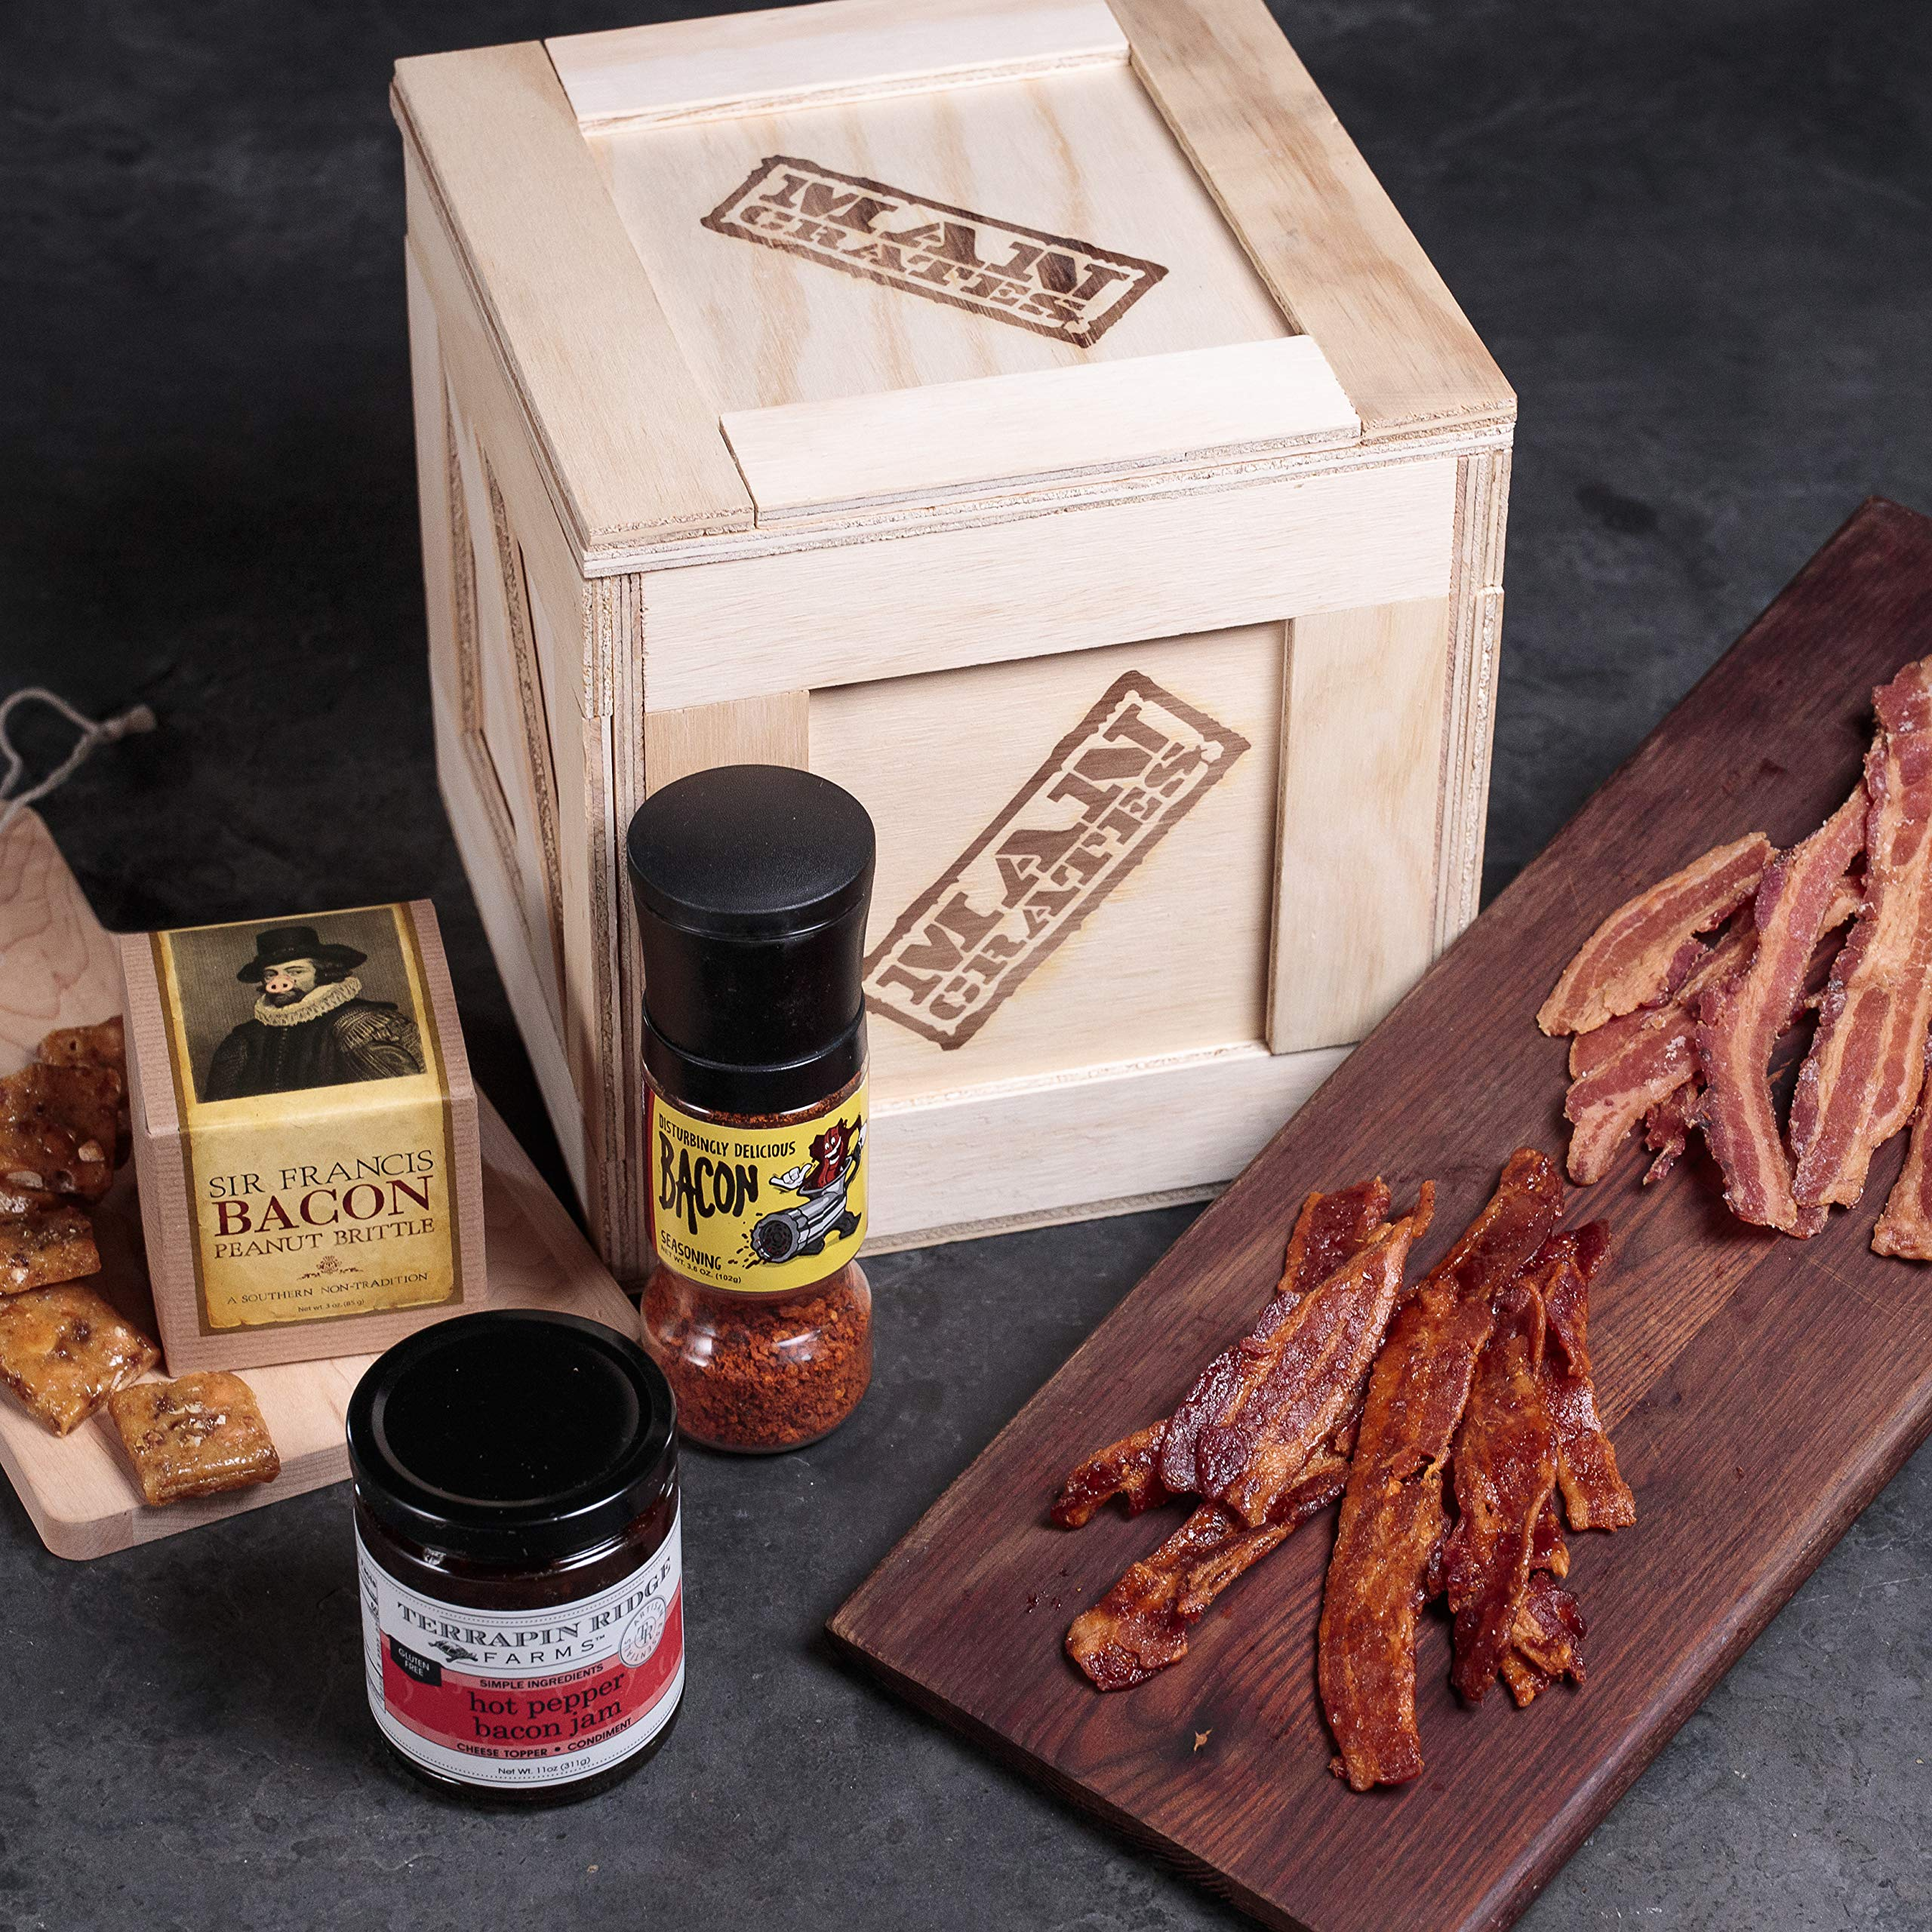 Bacon Crate – Includes 5 Awesome Bacon-Flavored Snacks Like Maple Bacon Jerky, Bacon Seasoning and More – Great Gifts for Men